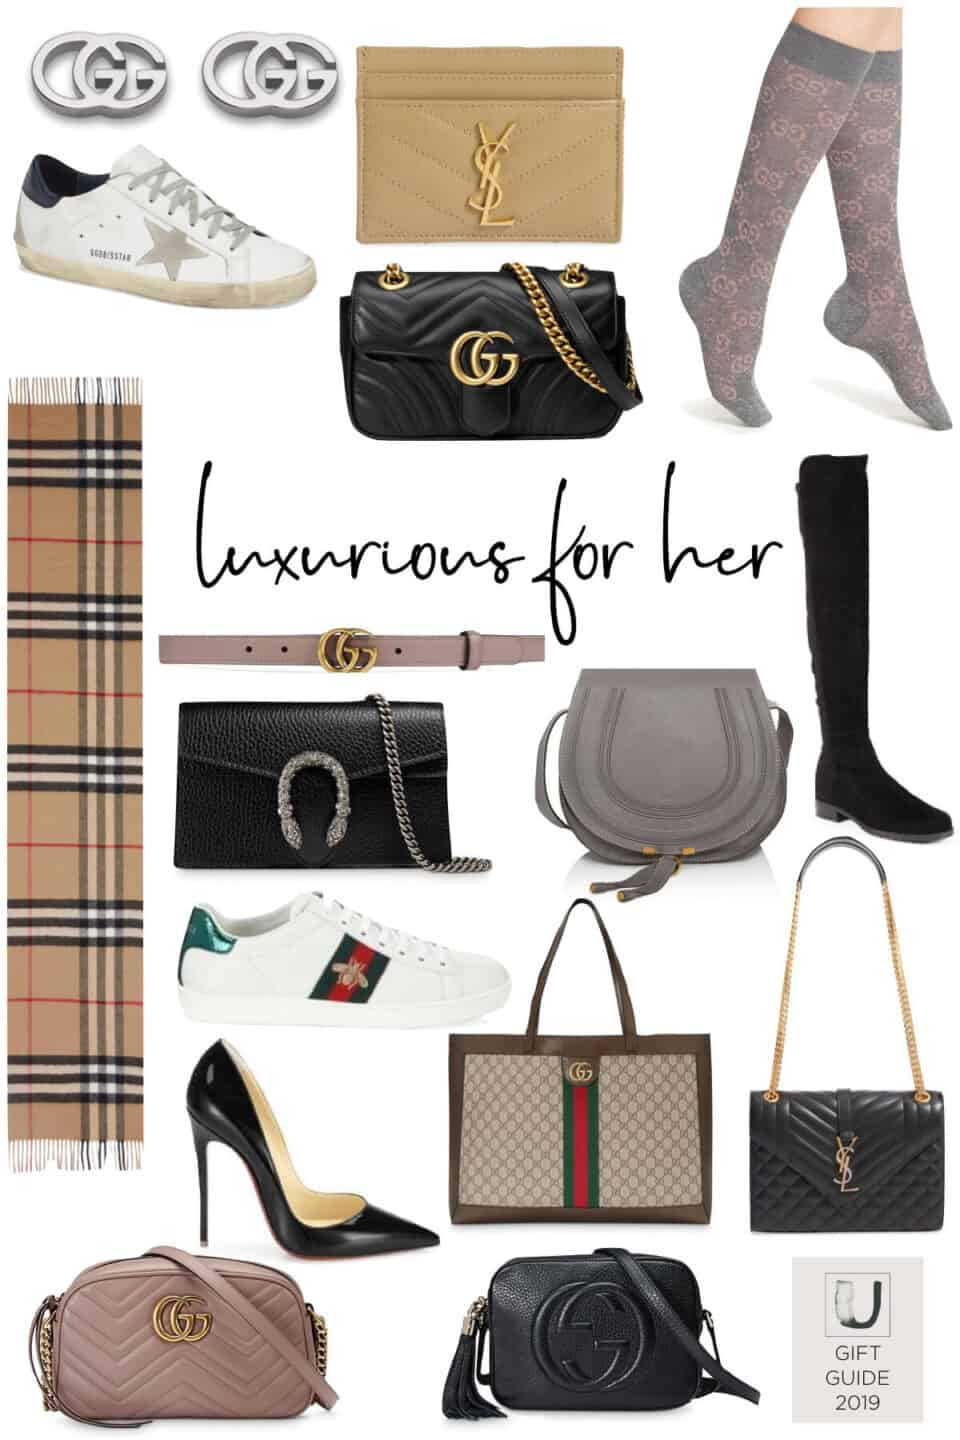 Splurge-Worthy Gift Guide for the Luxurious Lady //2019